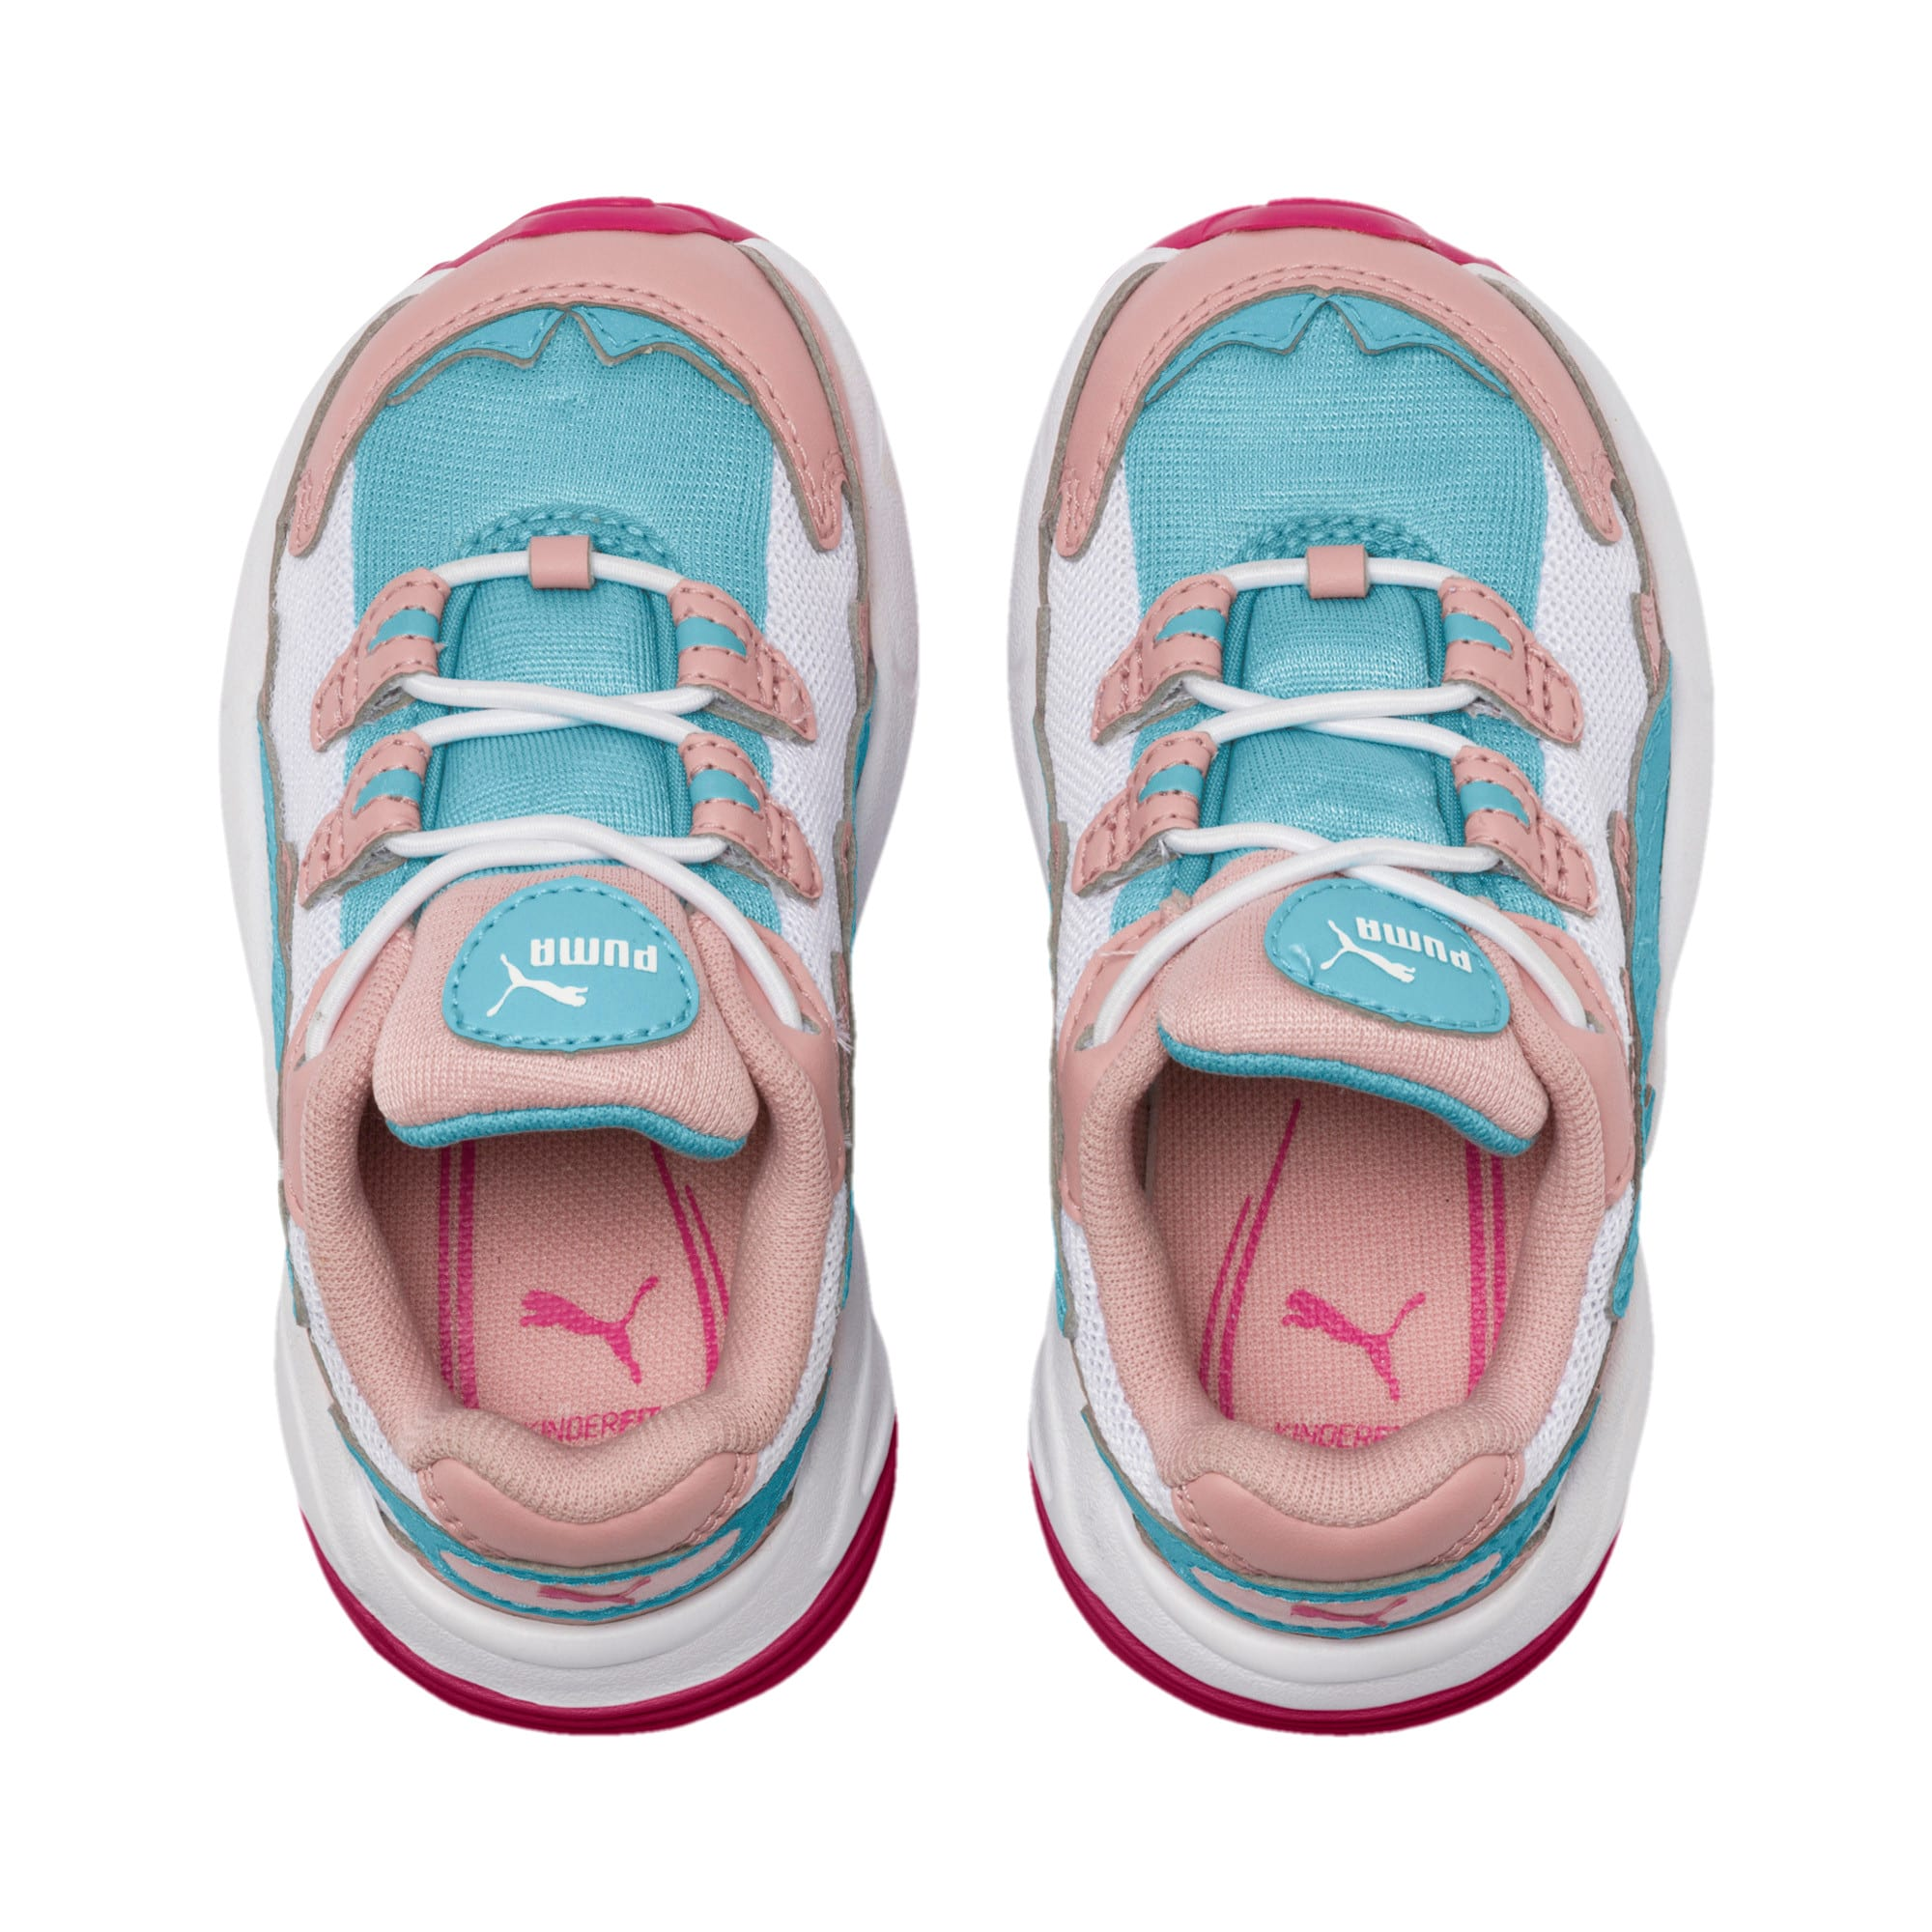 Thumbnail 6 of CELL Alien Cosmic Babies' Trainers, Bridal Rose-Milky Blue, medium